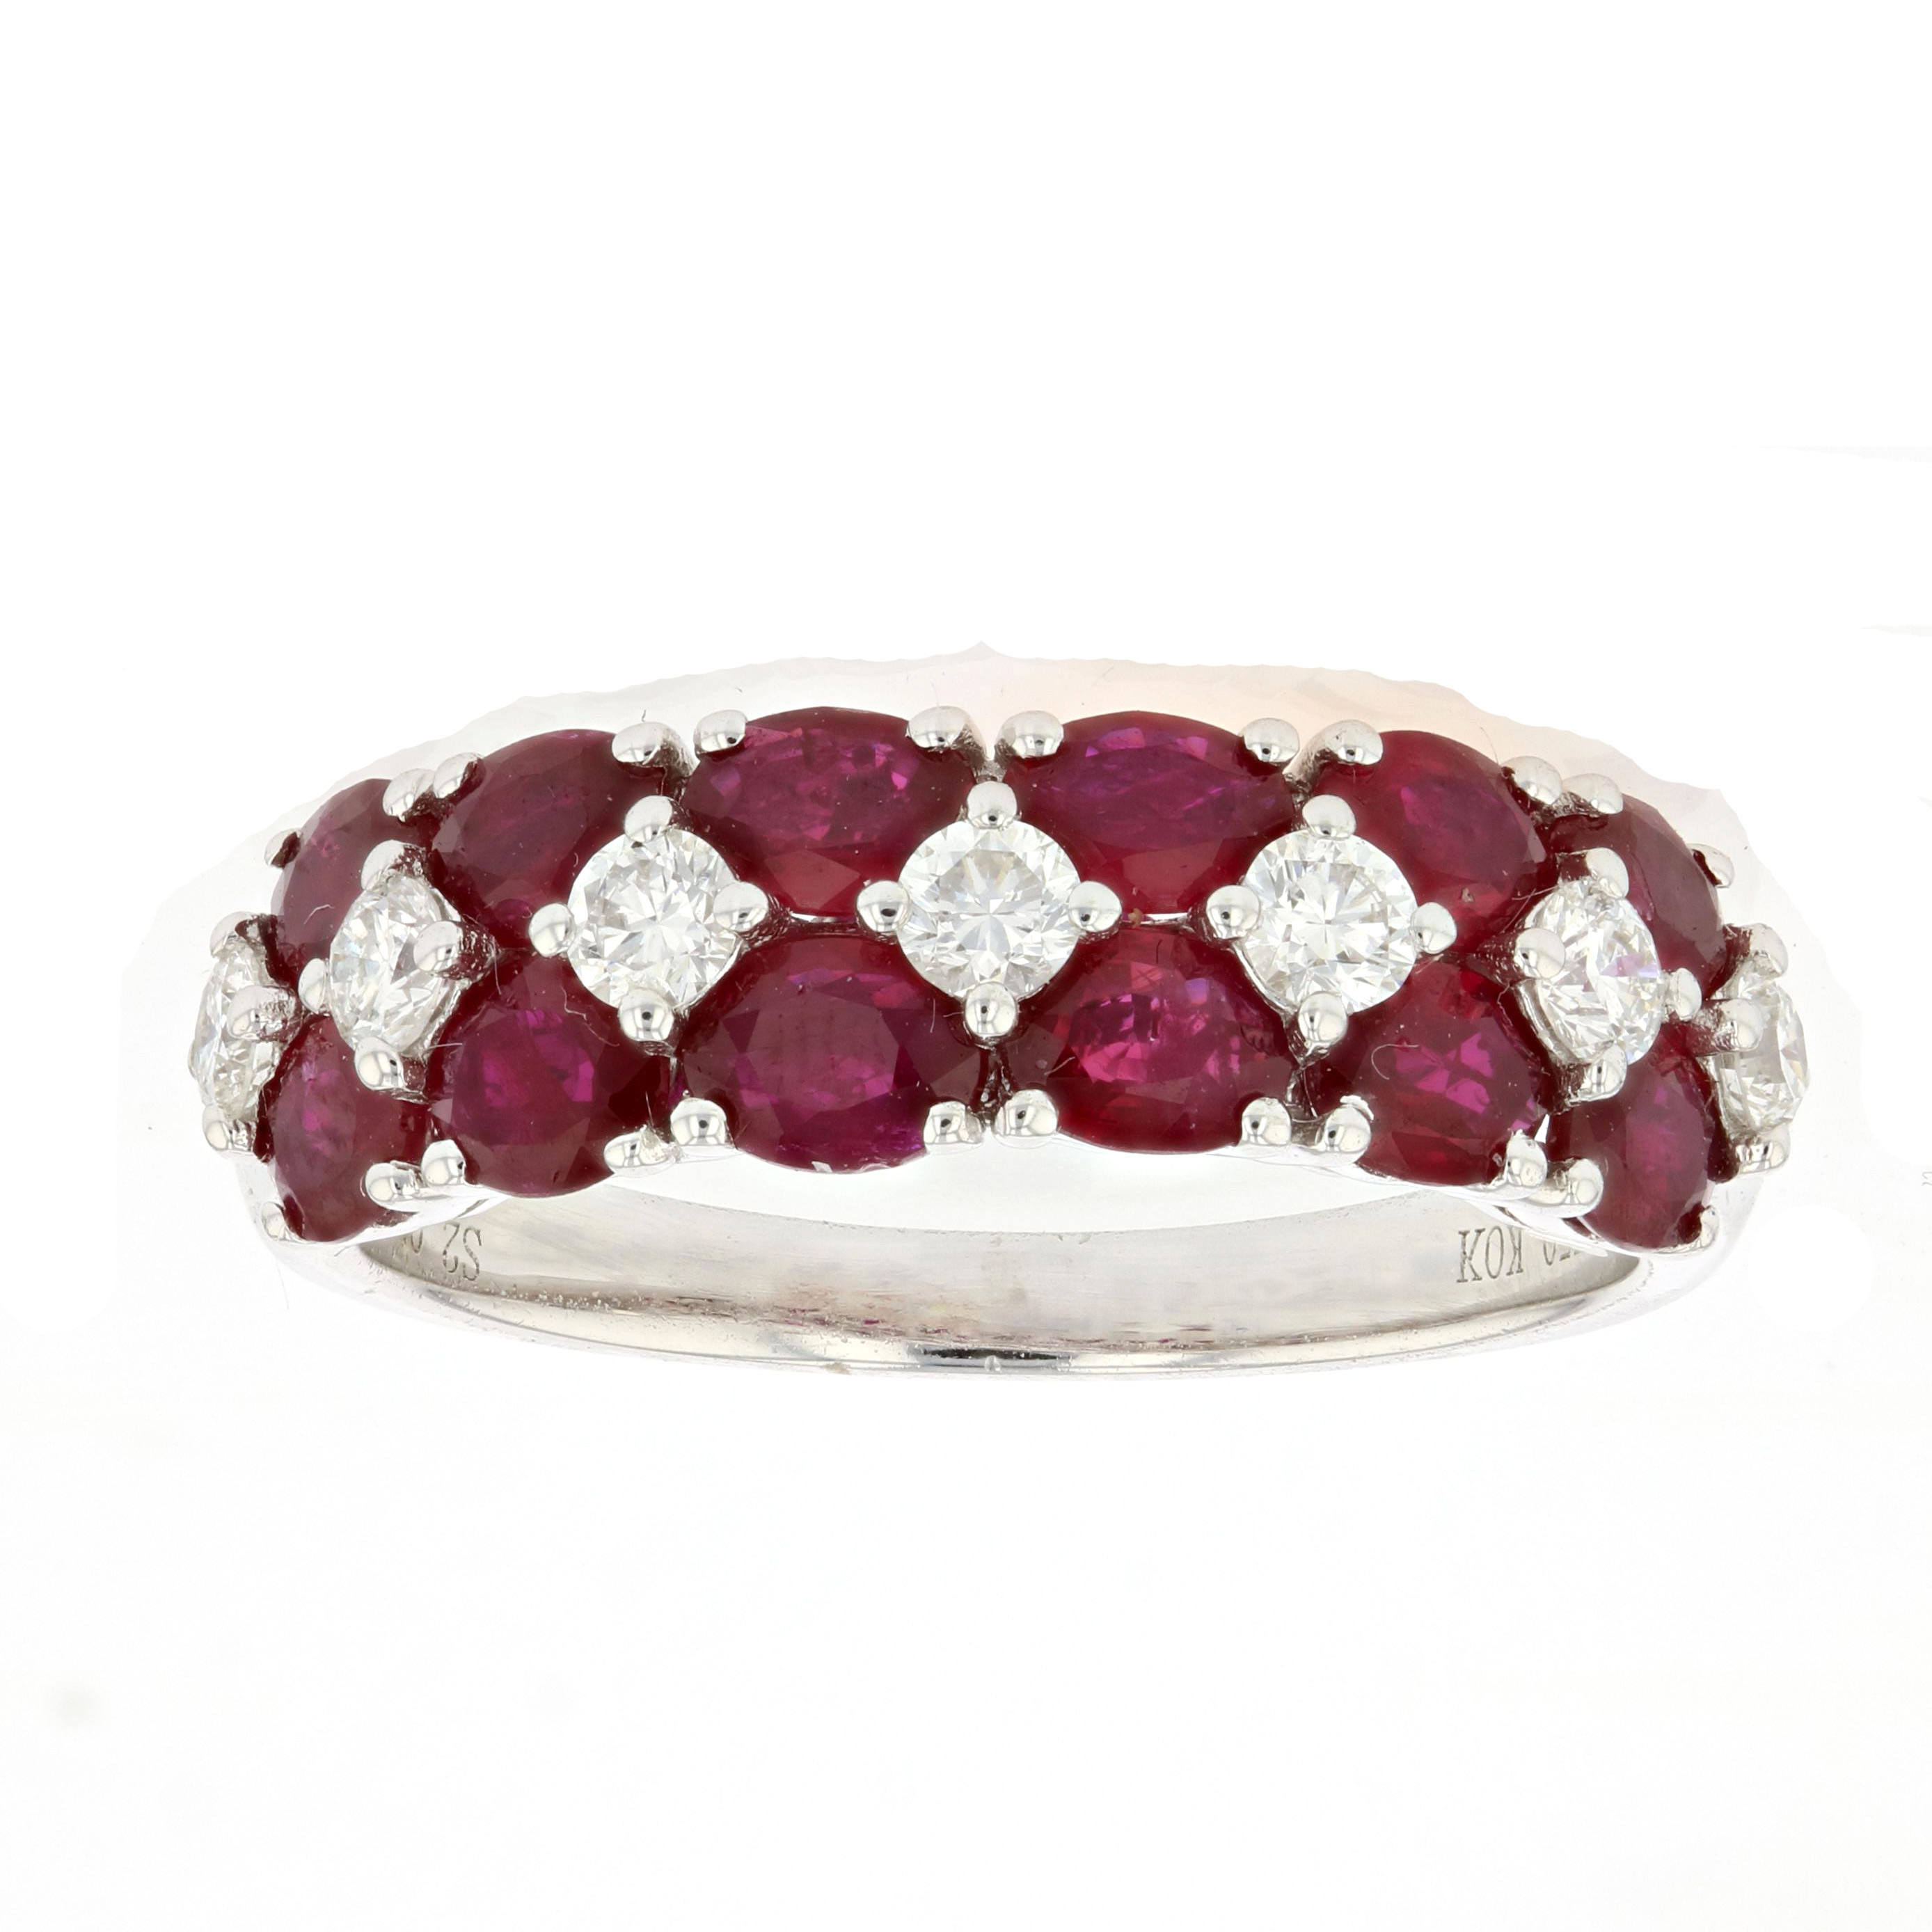 View 2.49ctw Diamond and Ruby Fashion Band in 18k White Gold